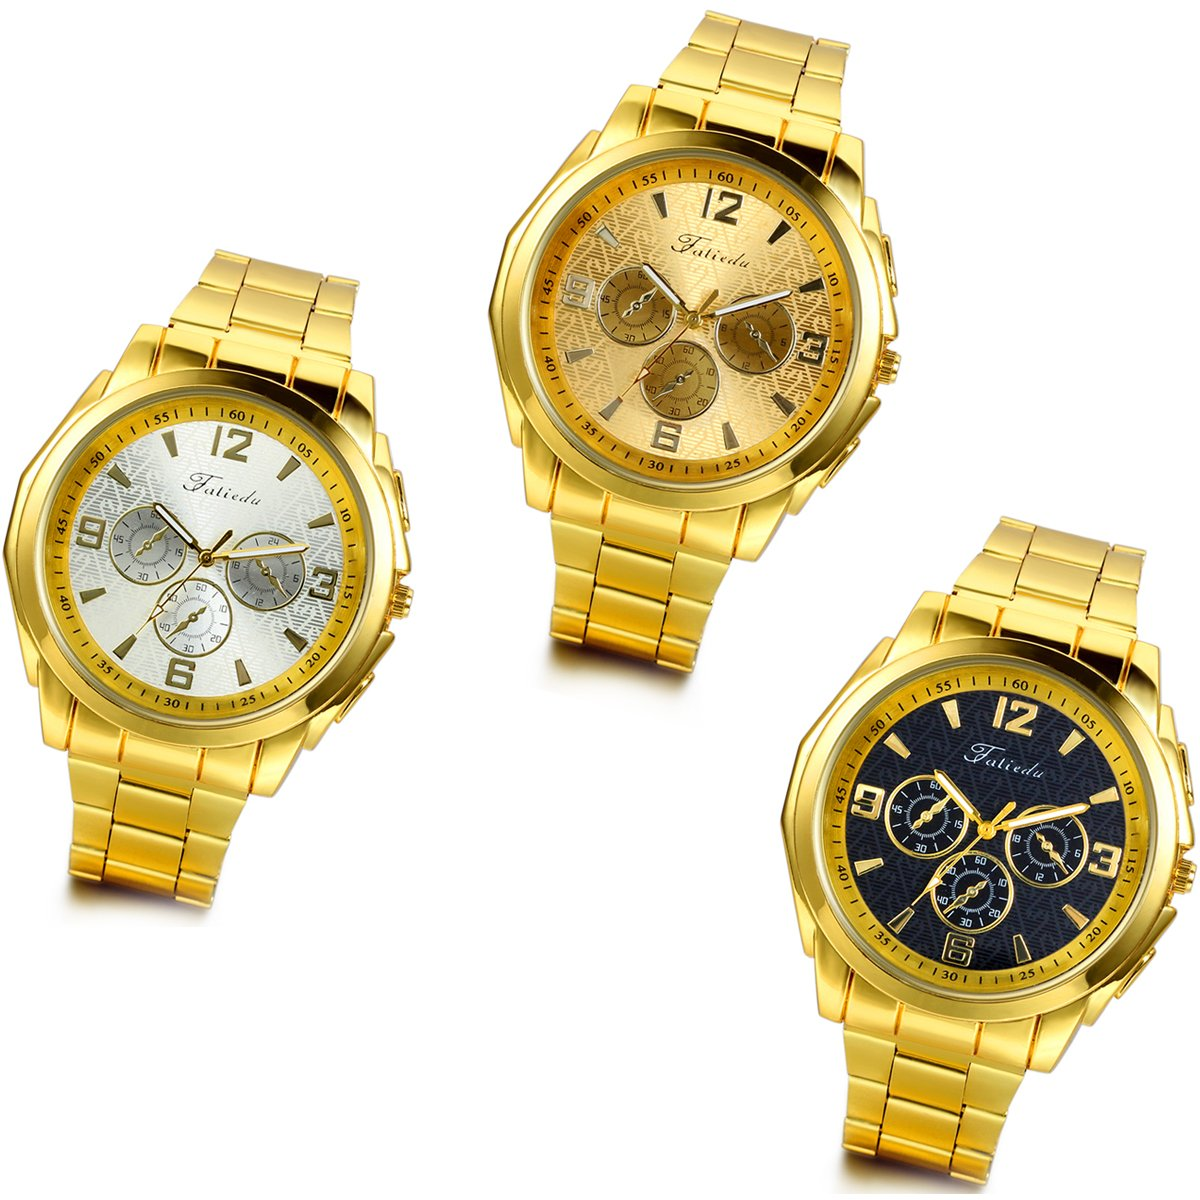 Lancardo Luxury Mens Gold Tone Bracelet Watches with Gift Bag (3PCS)